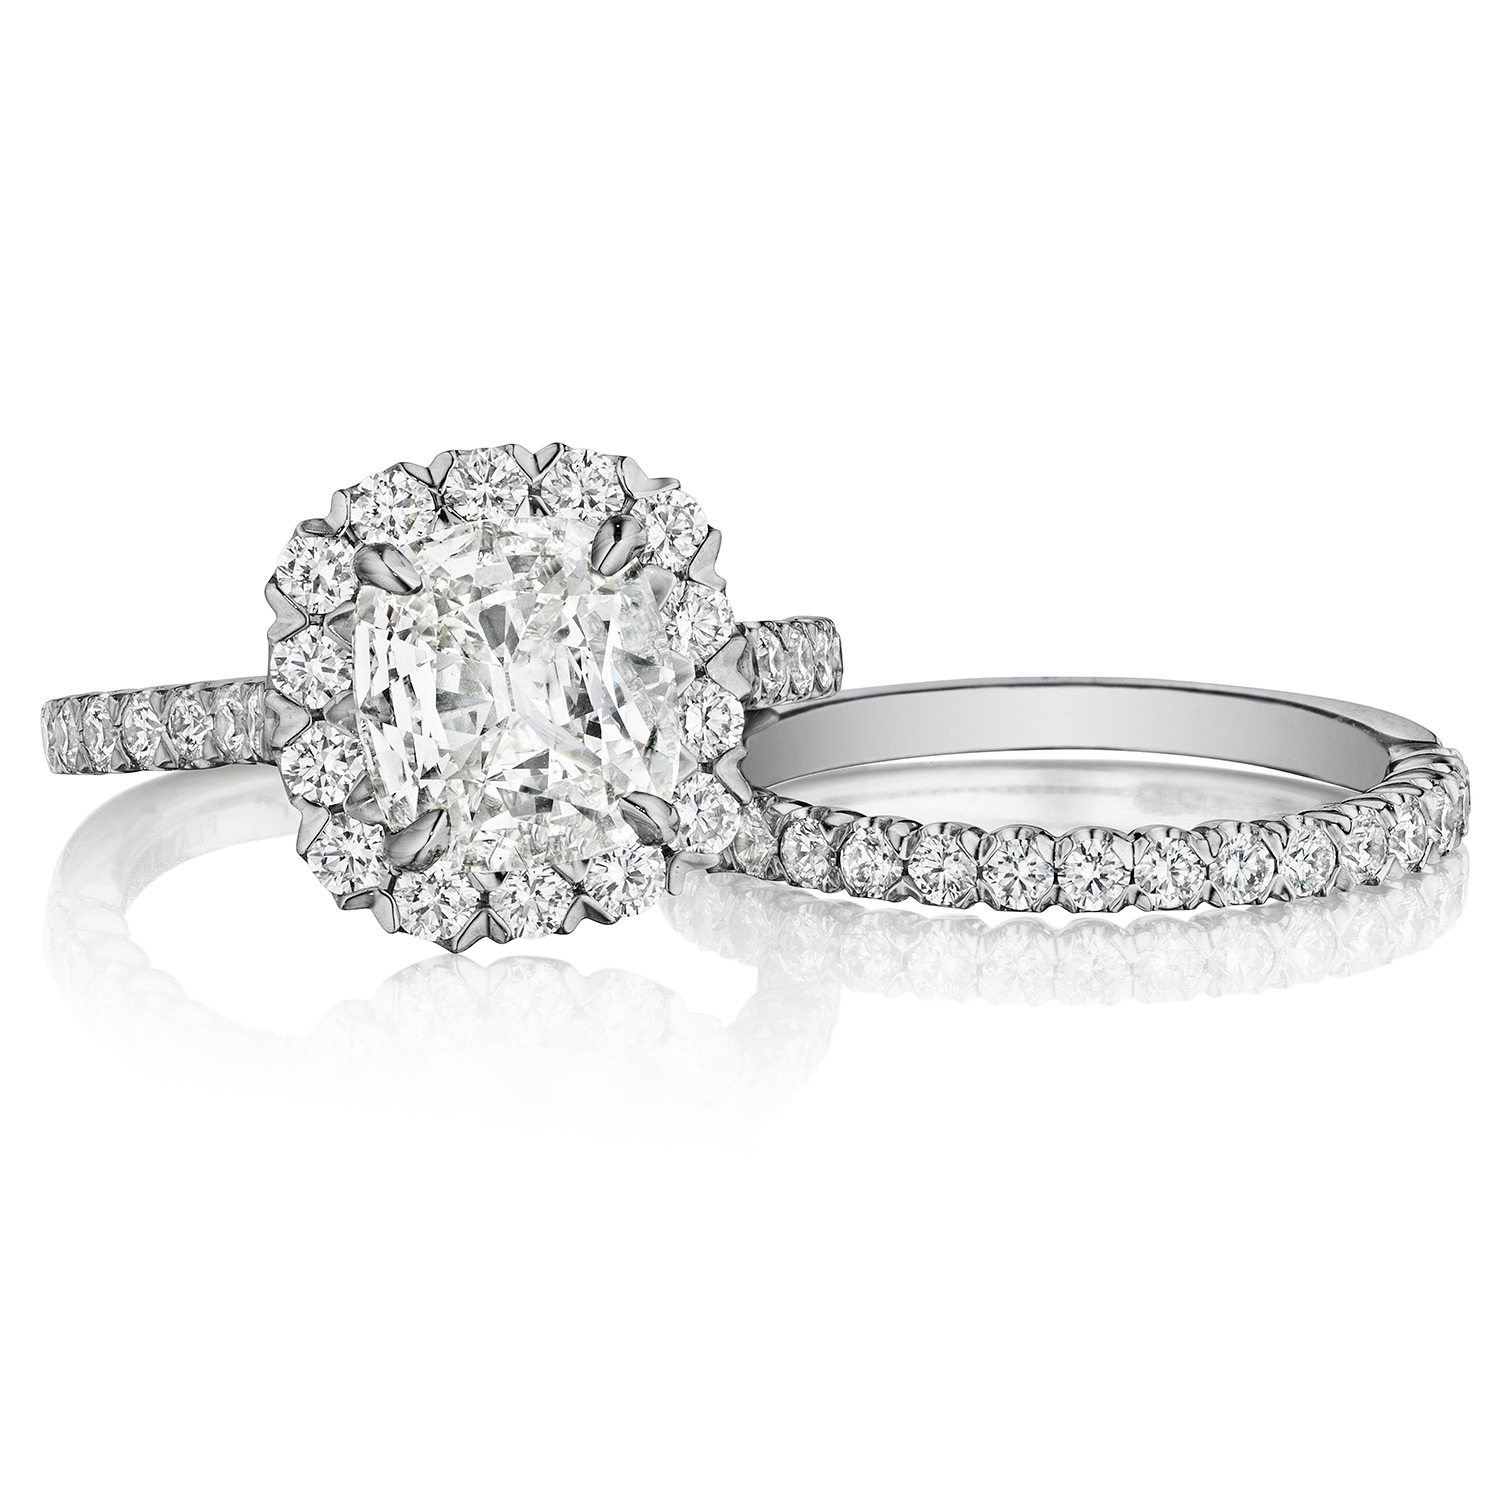 Henri Daussi AJS Unique V-Prong Cushion Halo Diamond Engagement Ring Alternative View 2